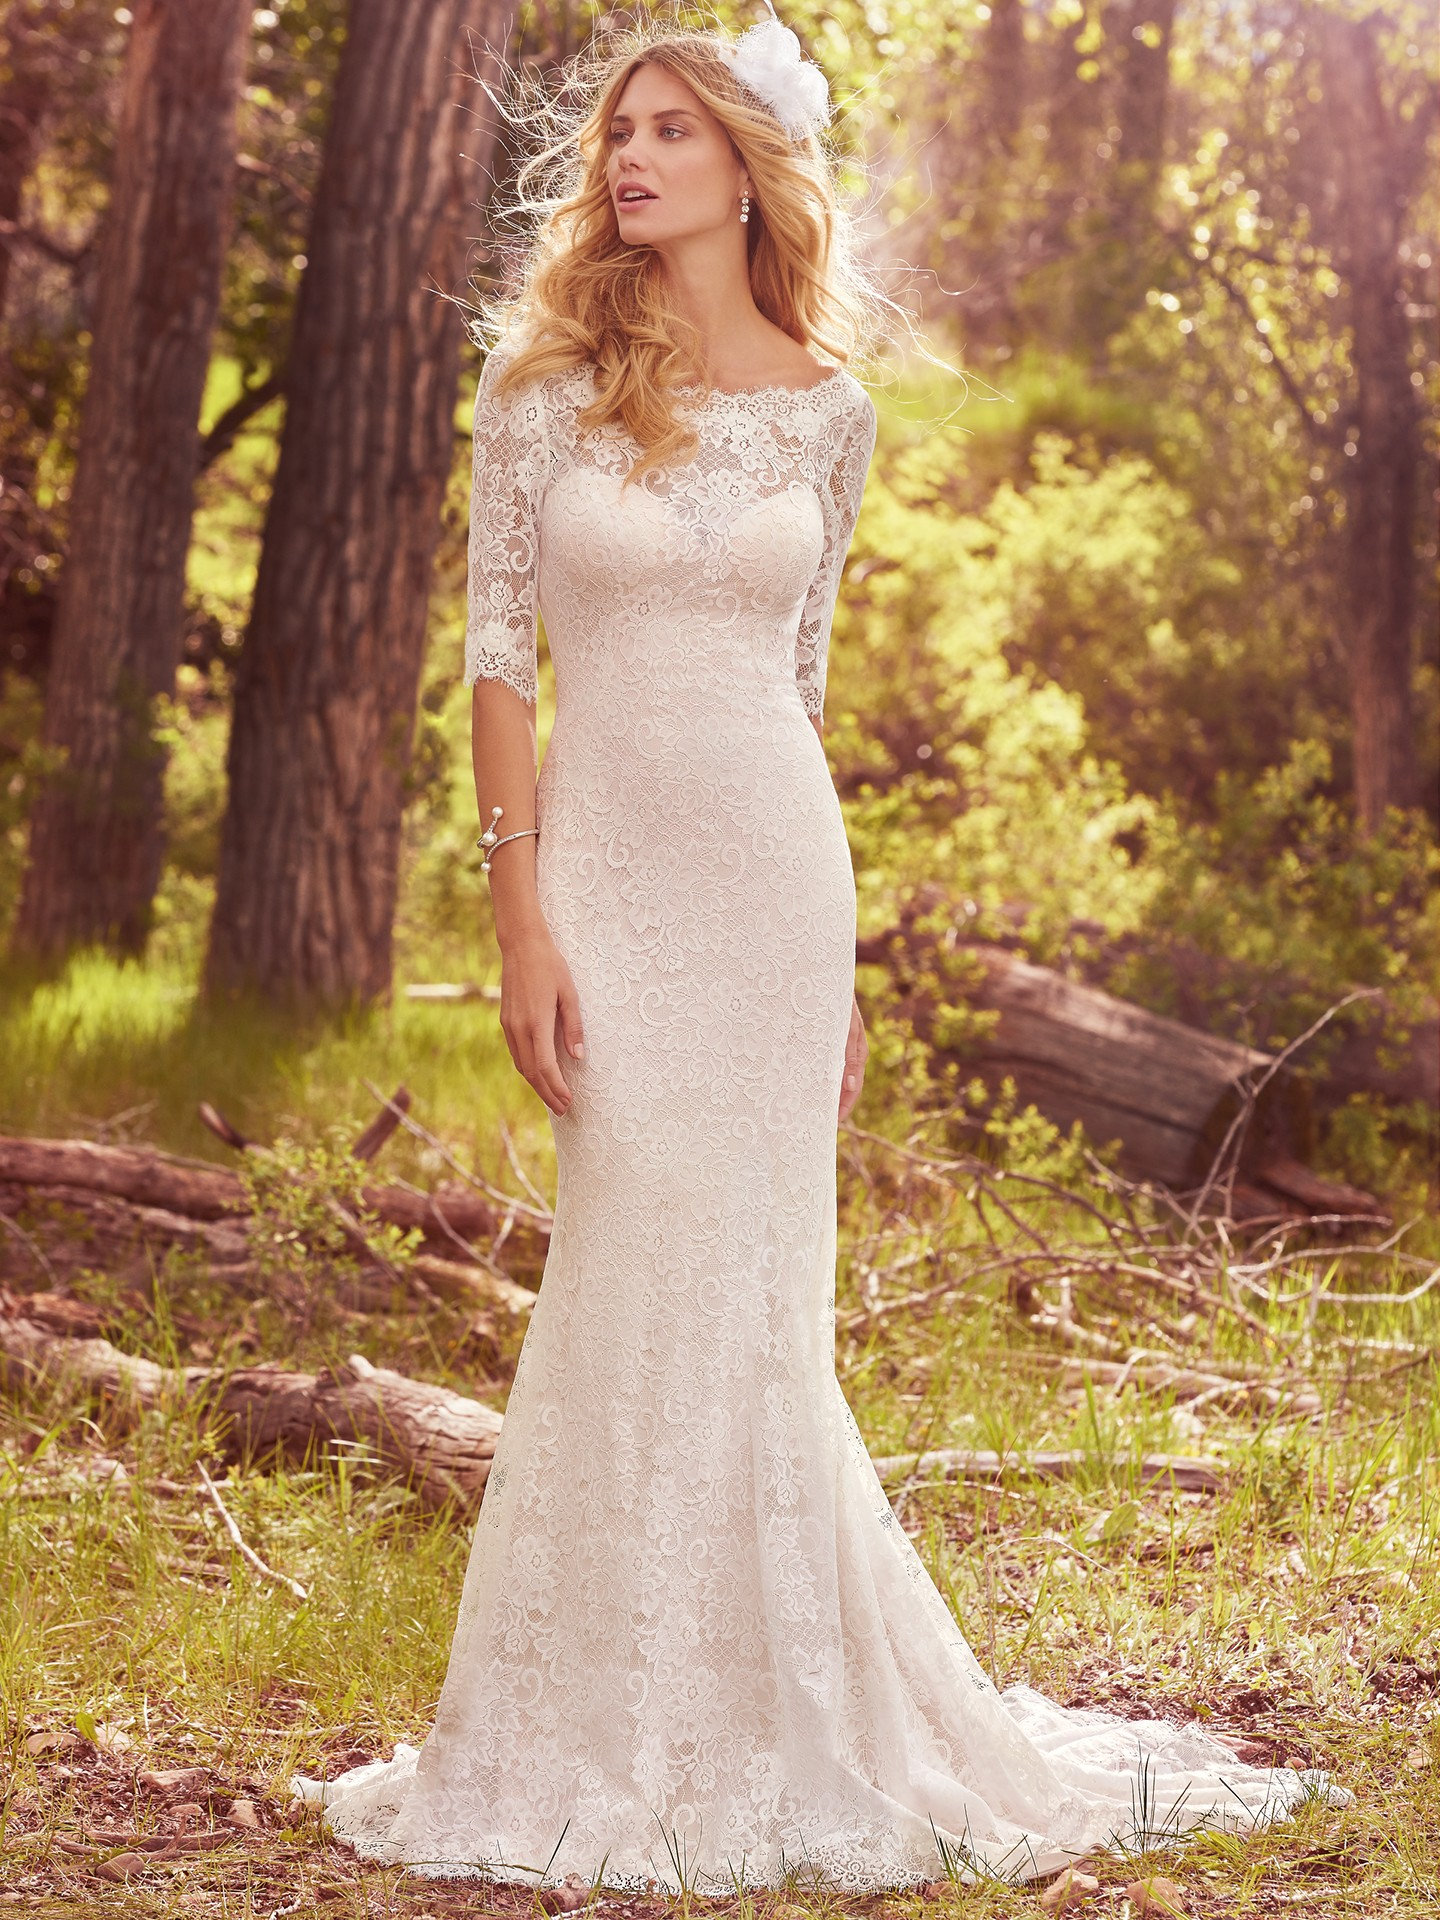 Flattering Wedding Dresses for Curvy Brides - McKenzie by Maggie Sottero